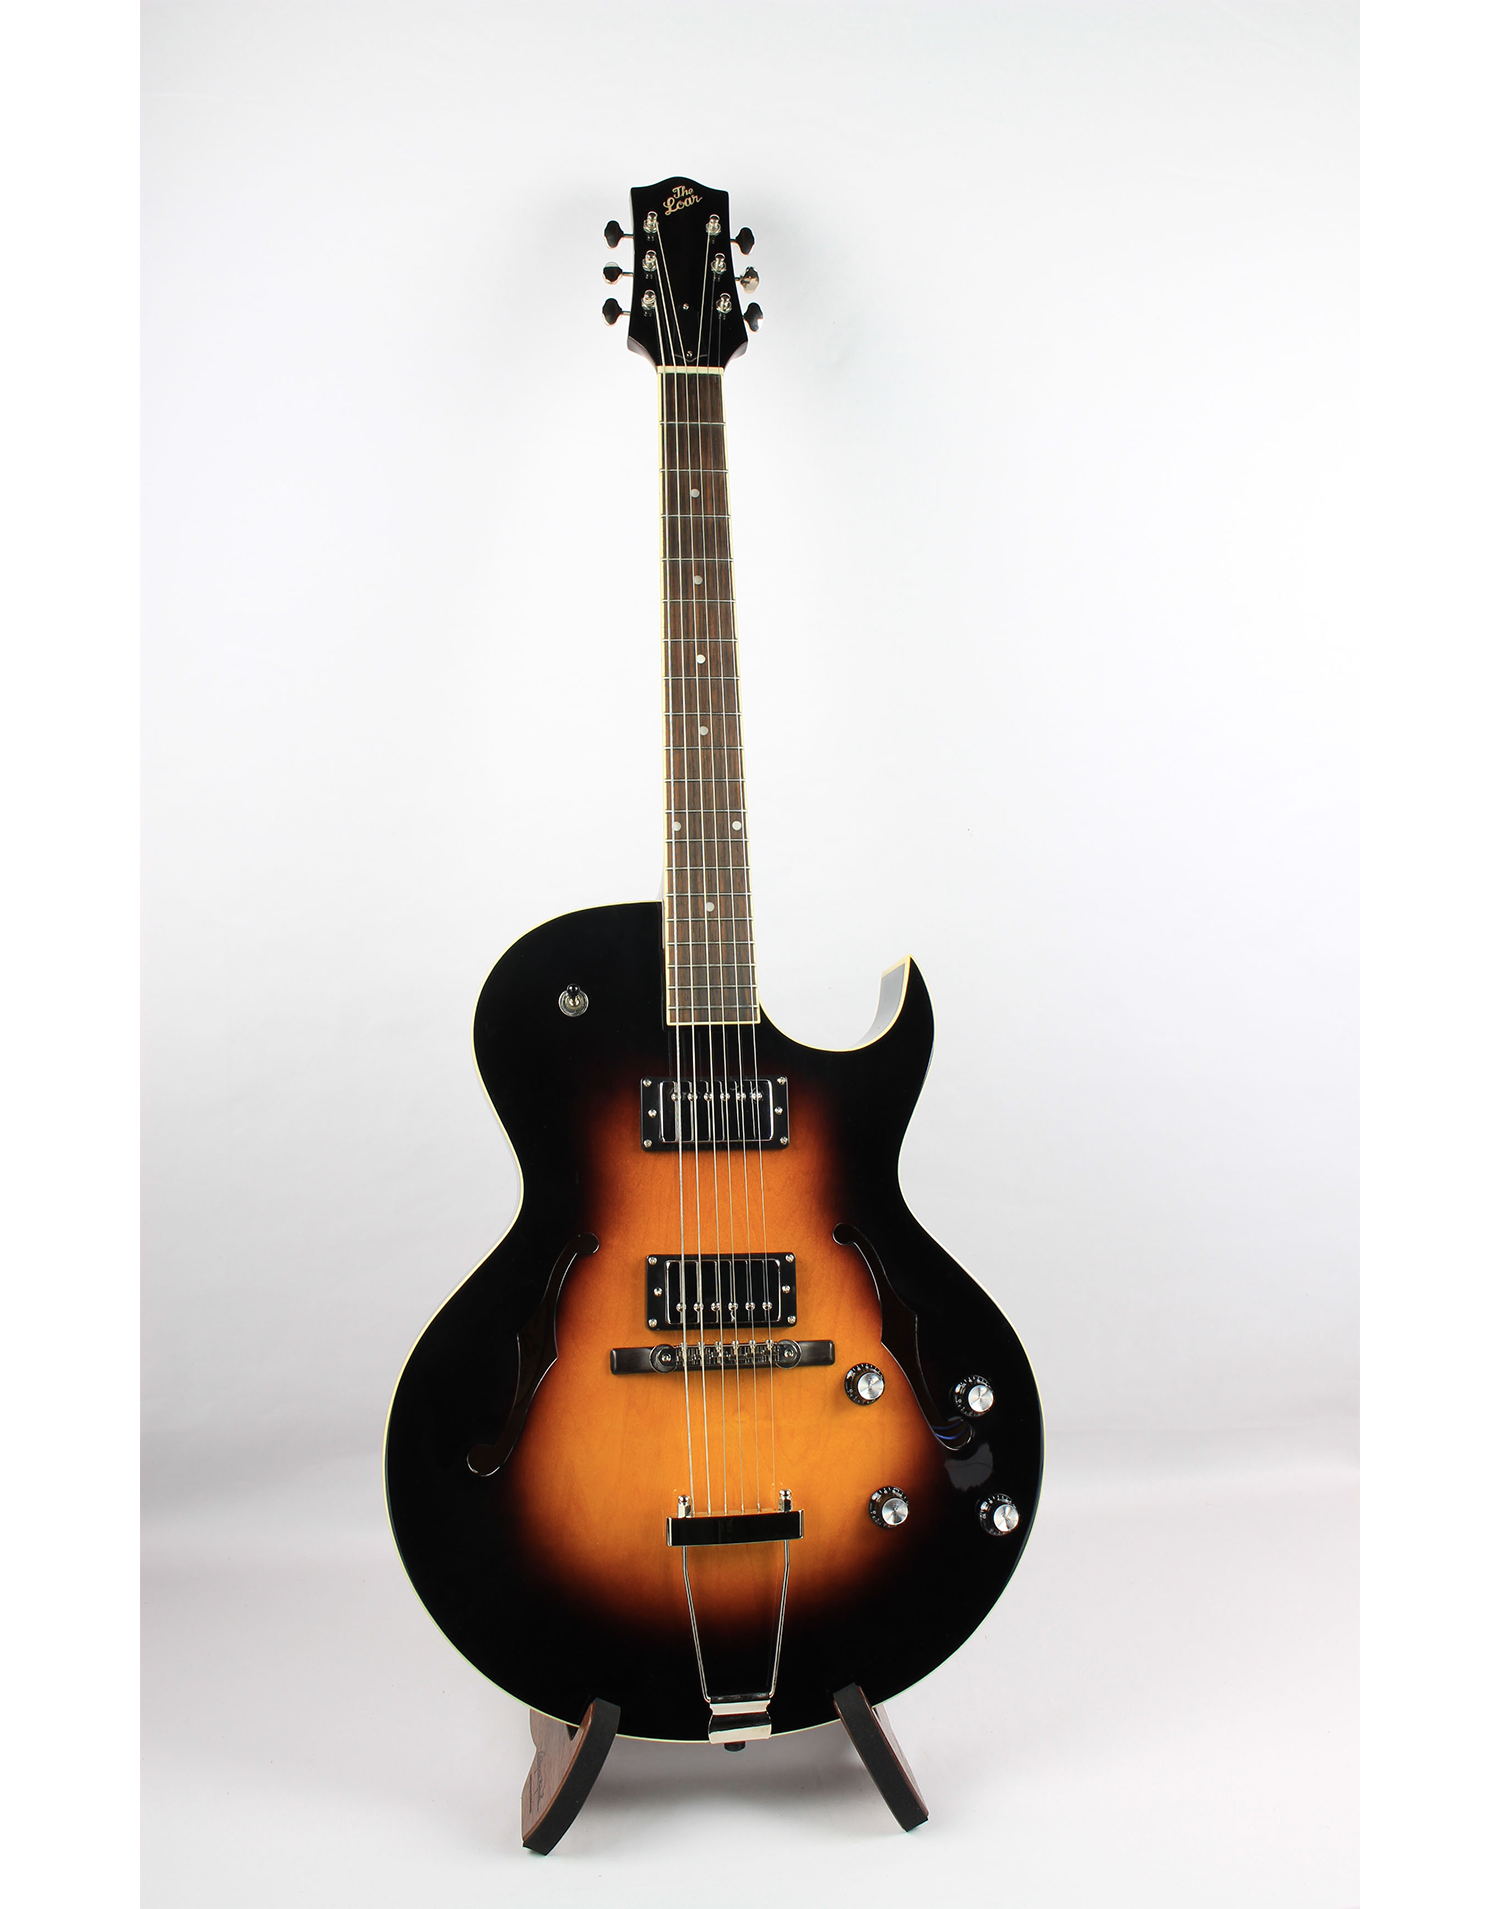 the loar lh280 hollow body archtop electric guitar. Black Bedroom Furniture Sets. Home Design Ideas